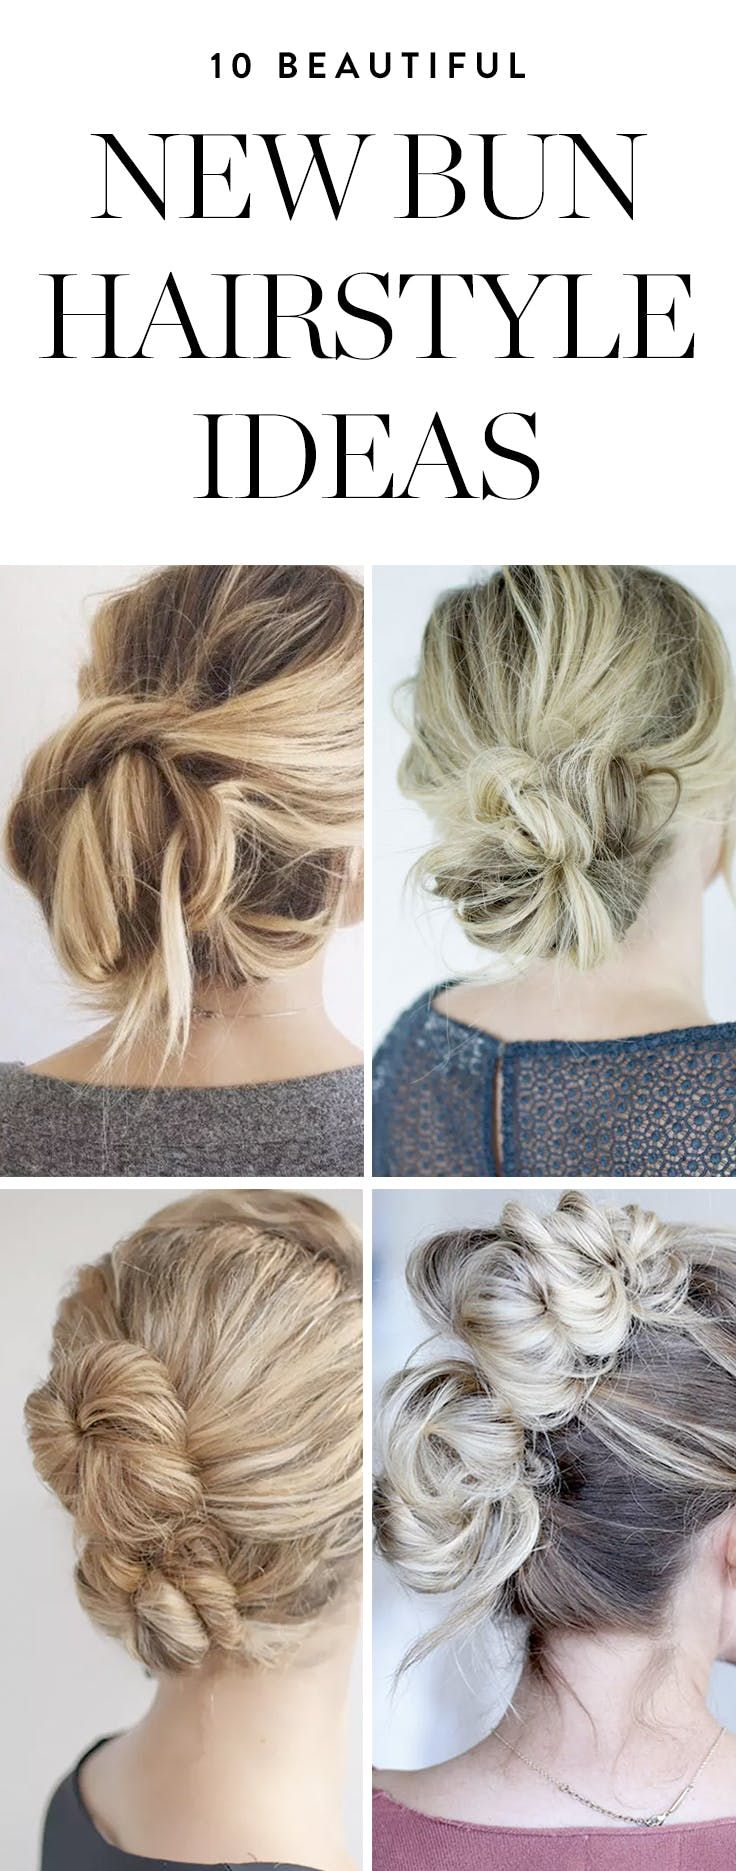 10 Cute Braided Hairstyles You Haven't Seen Before advise